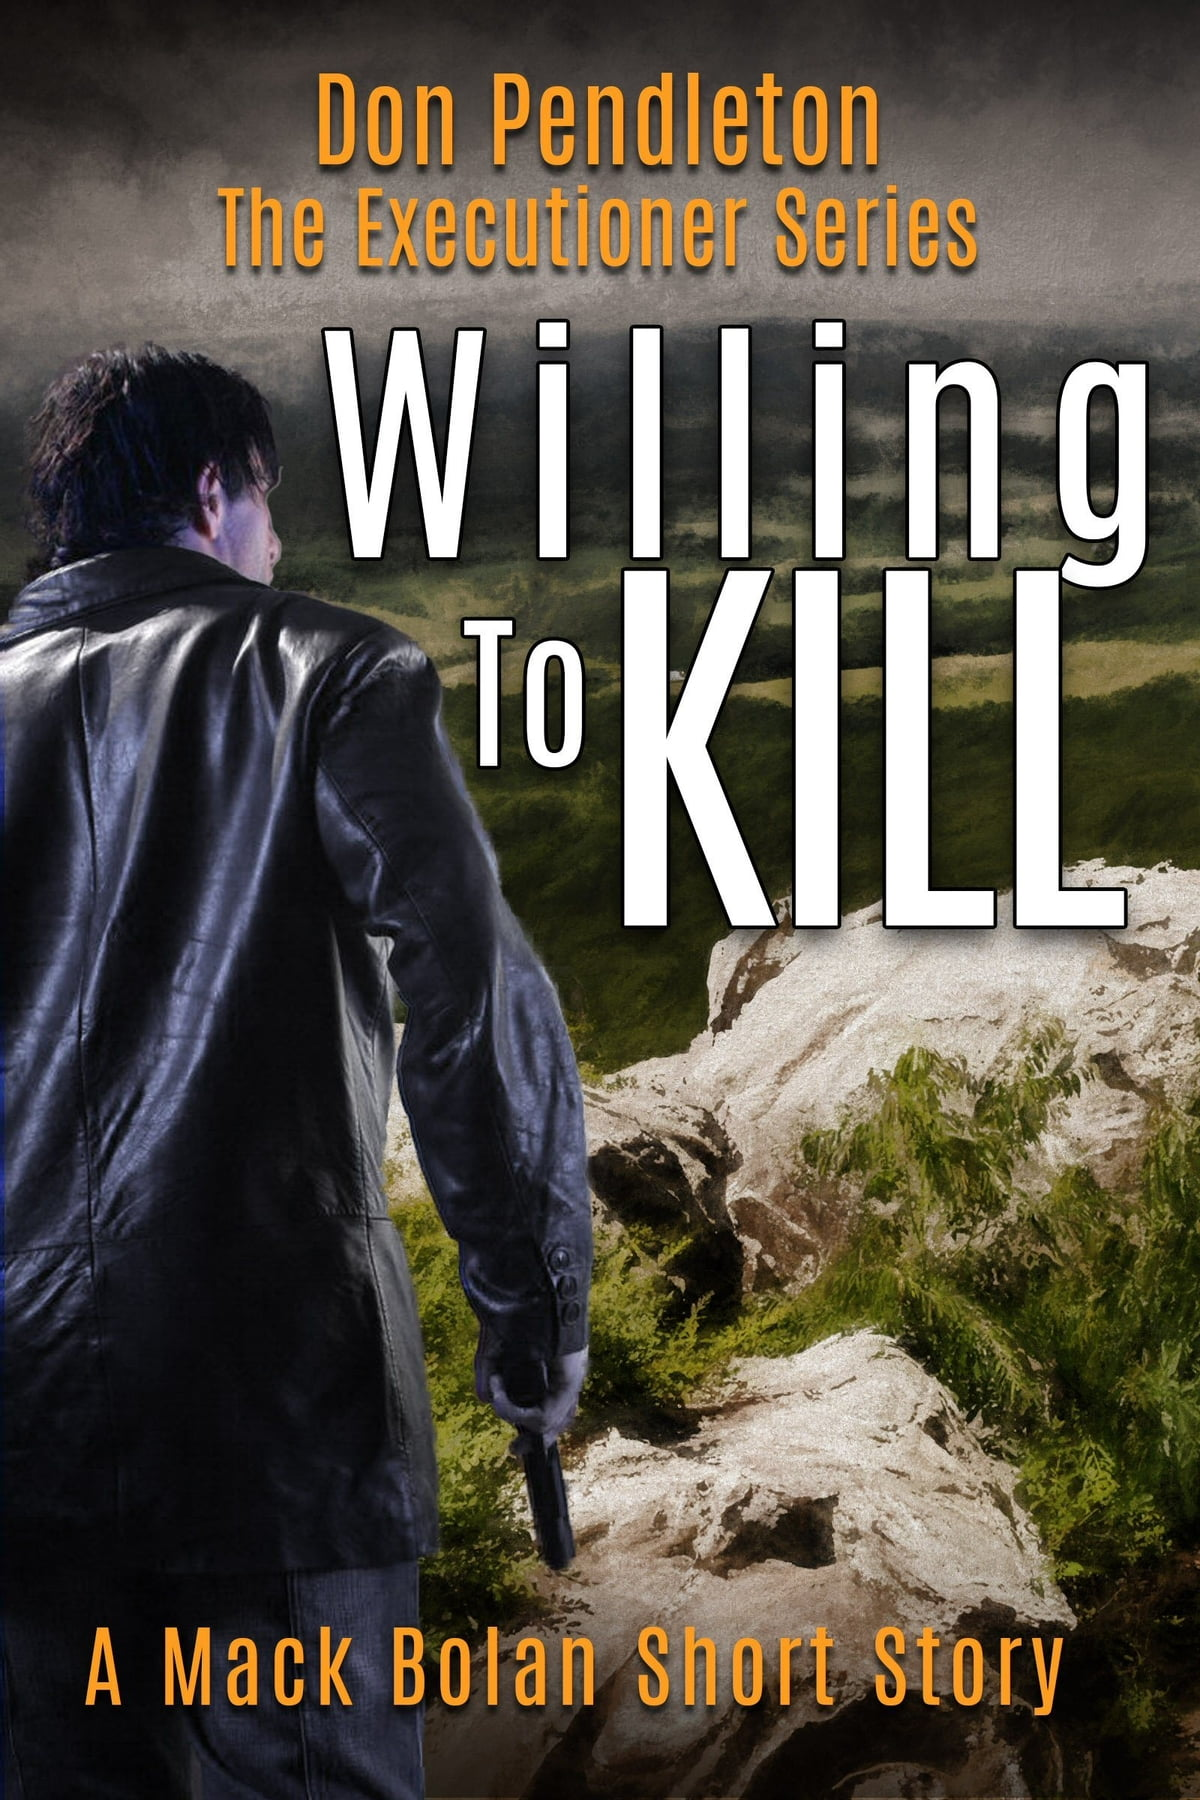 Willing to Kill, The Executioner: Mack Bolan Short Story eBook by Don  Pendleton - 9780463225417 | Rakuten Kobo